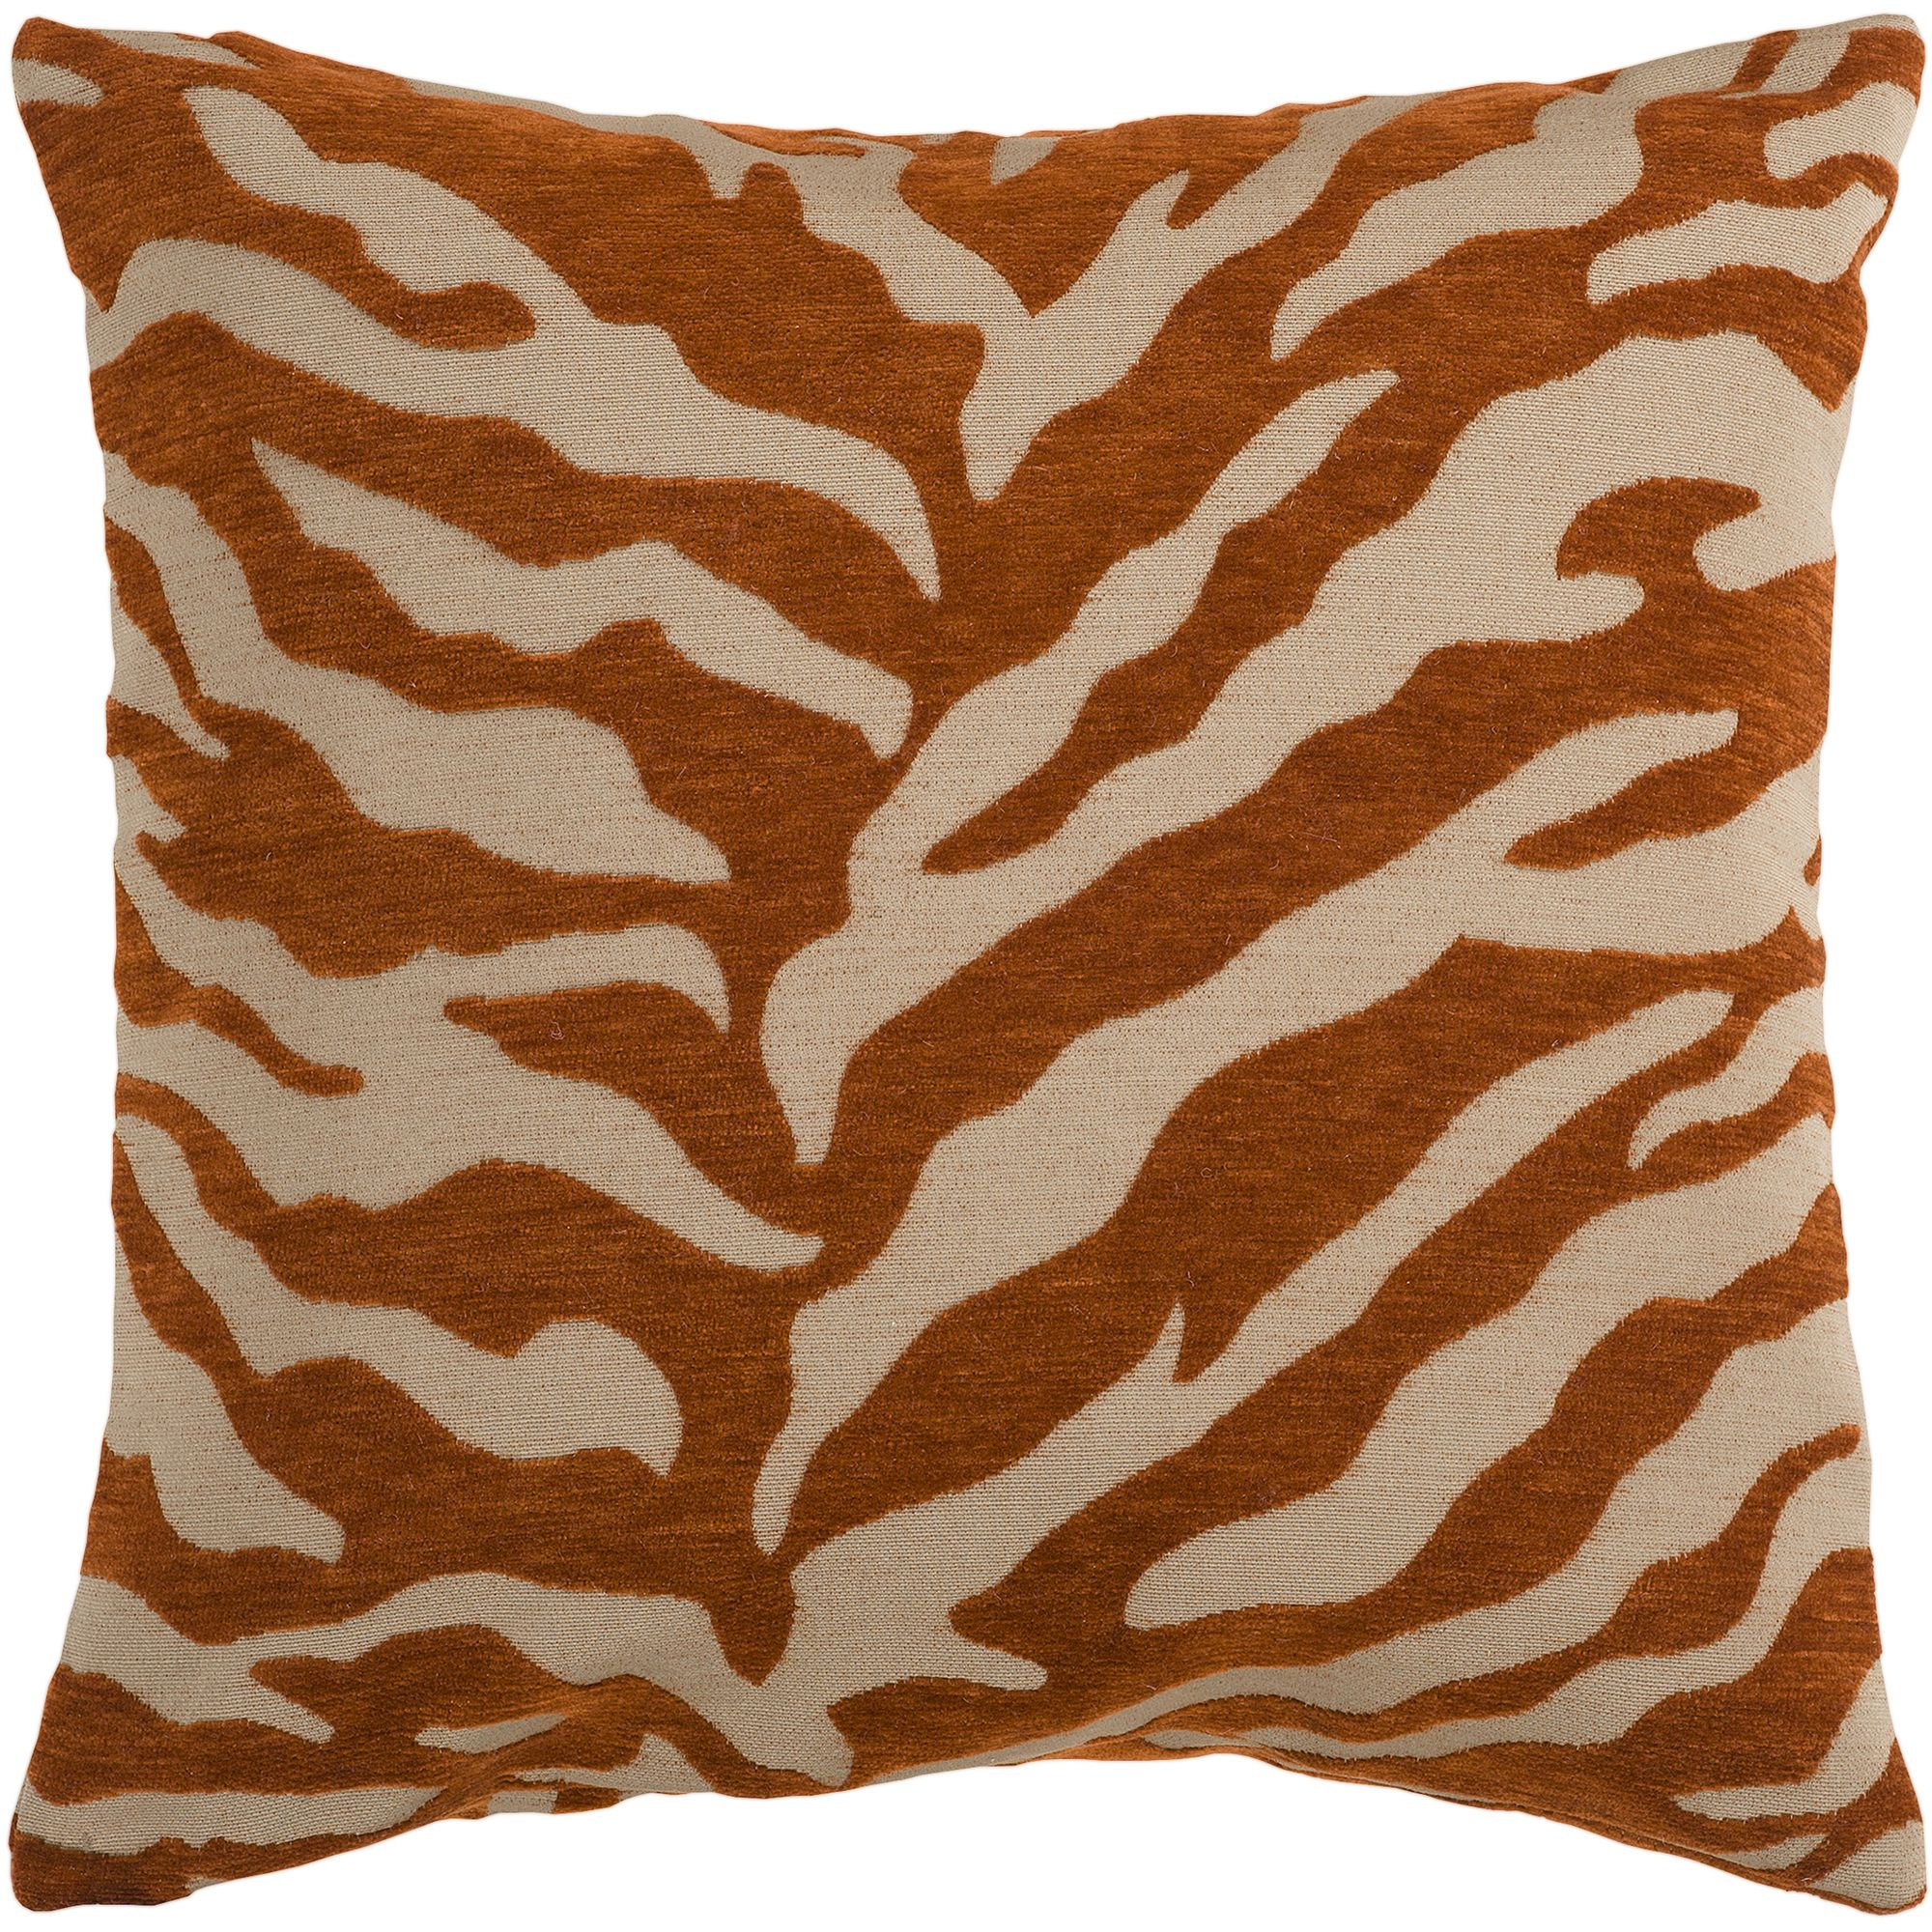 Art of Knot River Hand Crafted Zippy Zebra Decorative Pillow with Poly Filler, Rust